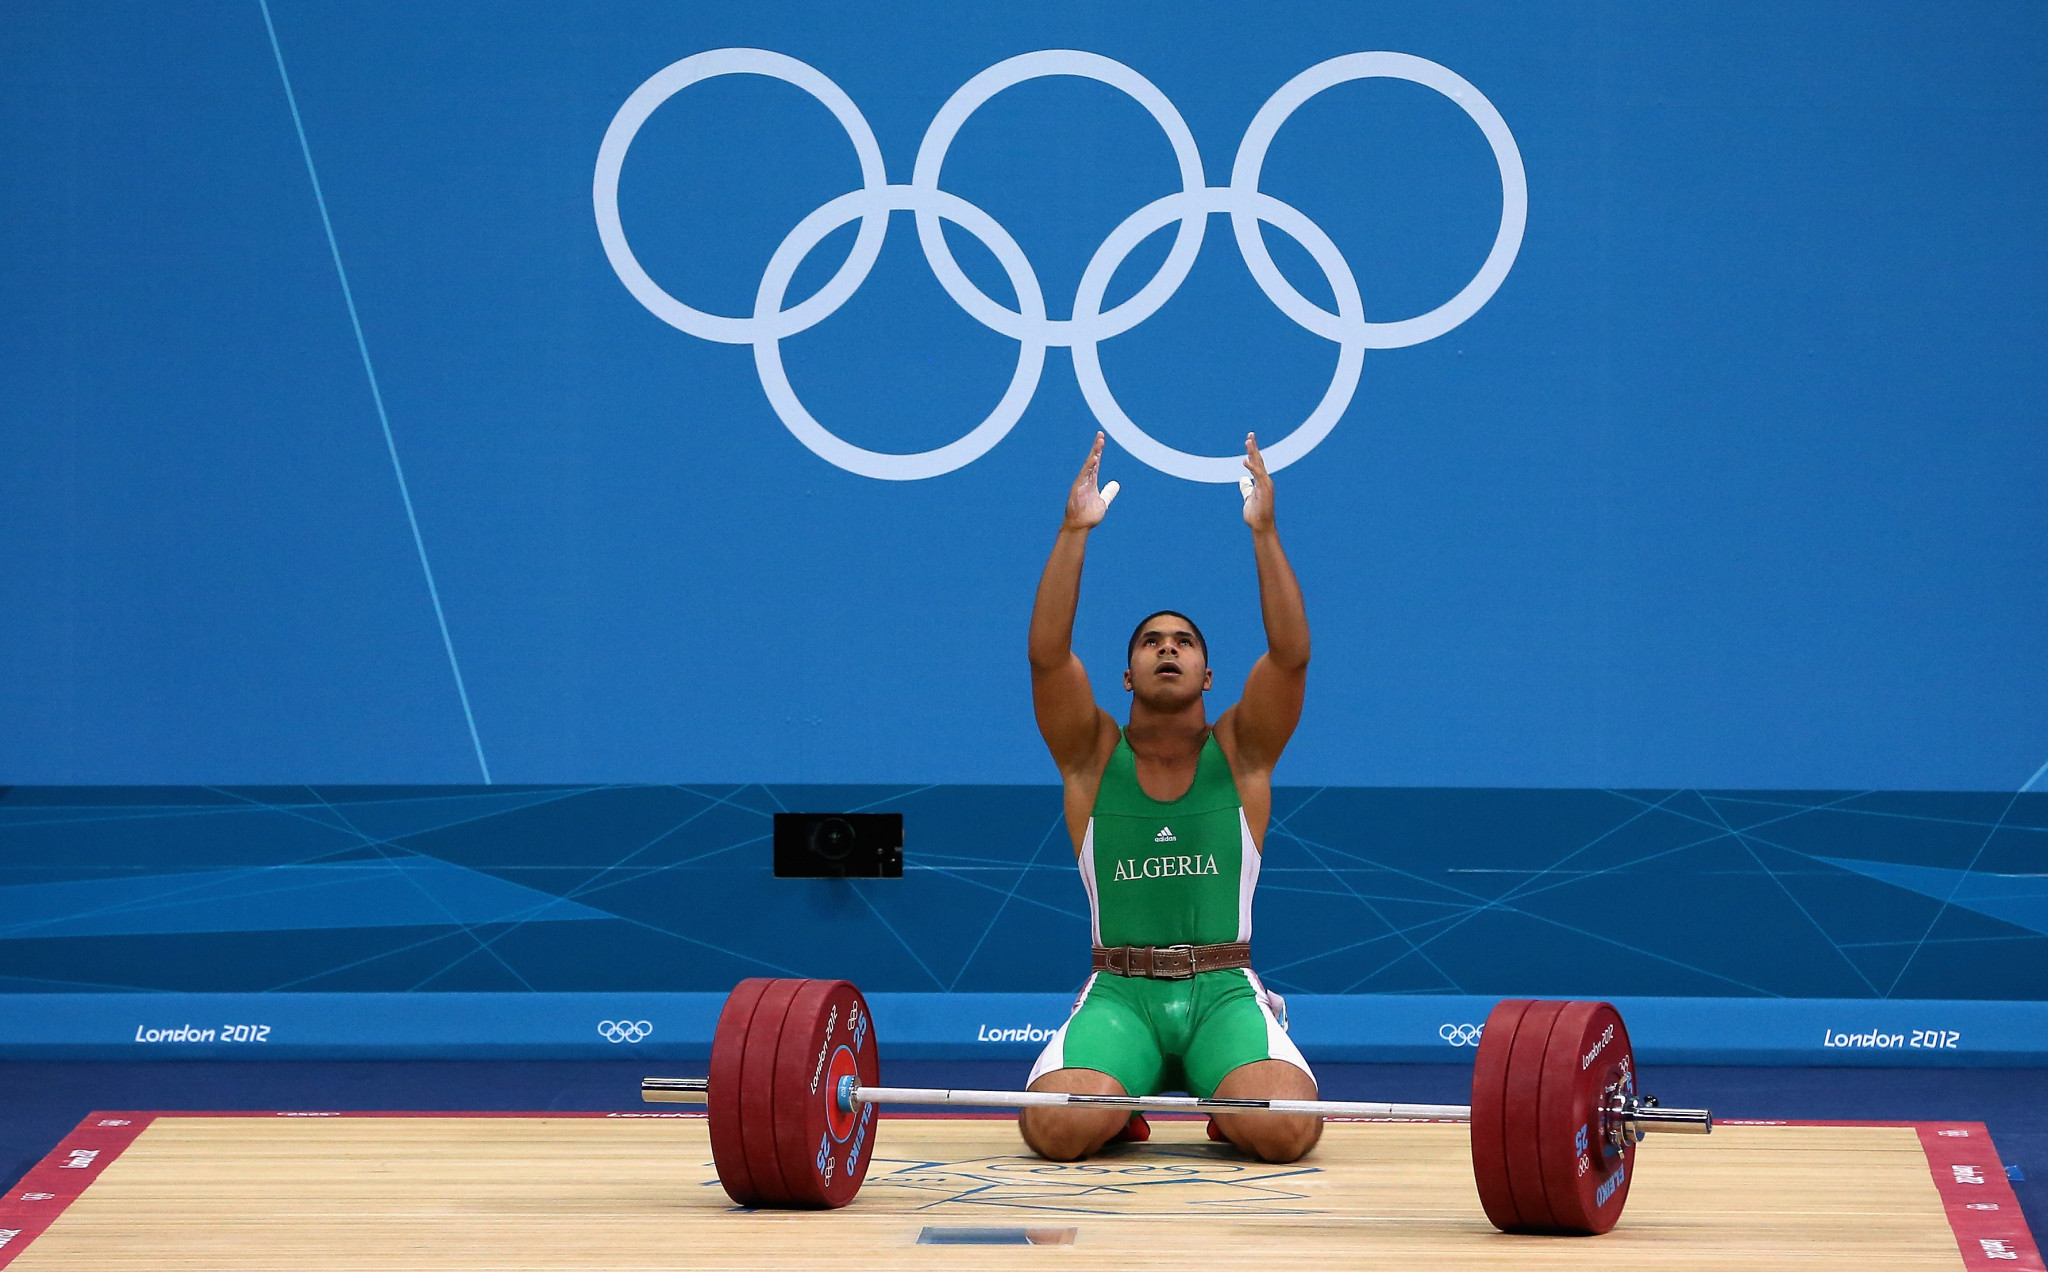 Walid Bidani competed at London 2012 and Rio 2016 ©Getty Images